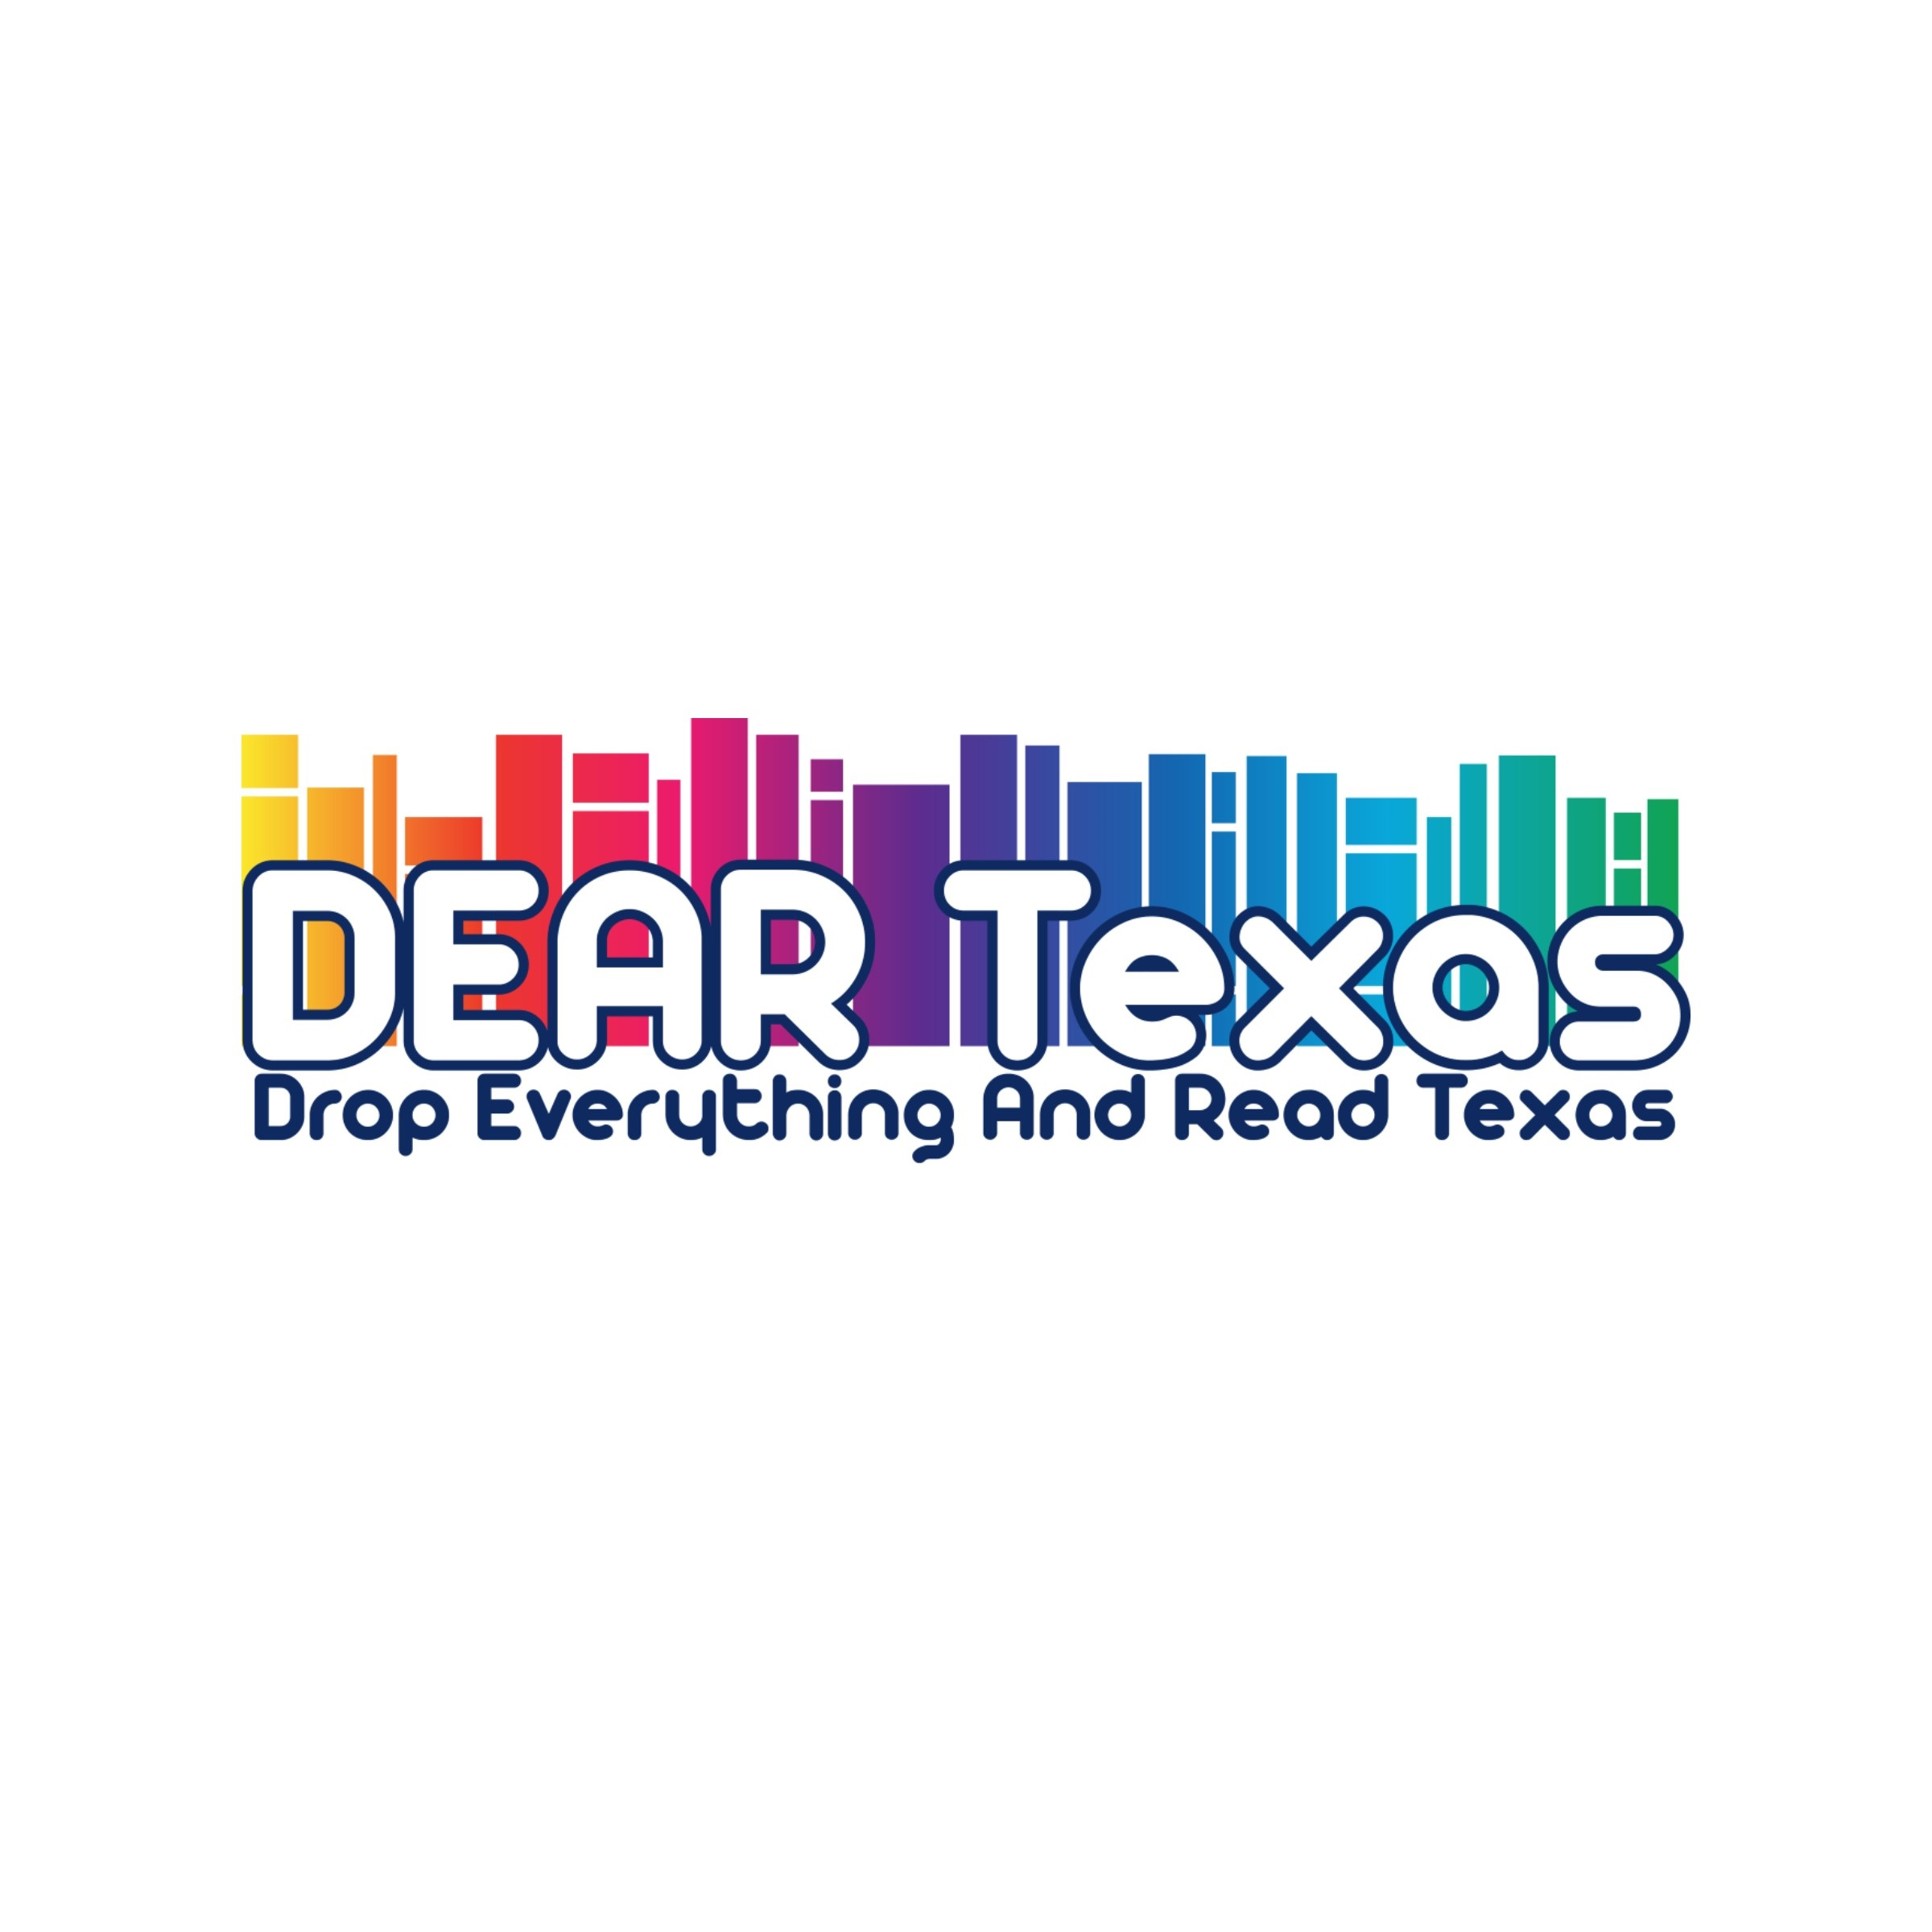 Logo-Dear Texas, Inc.